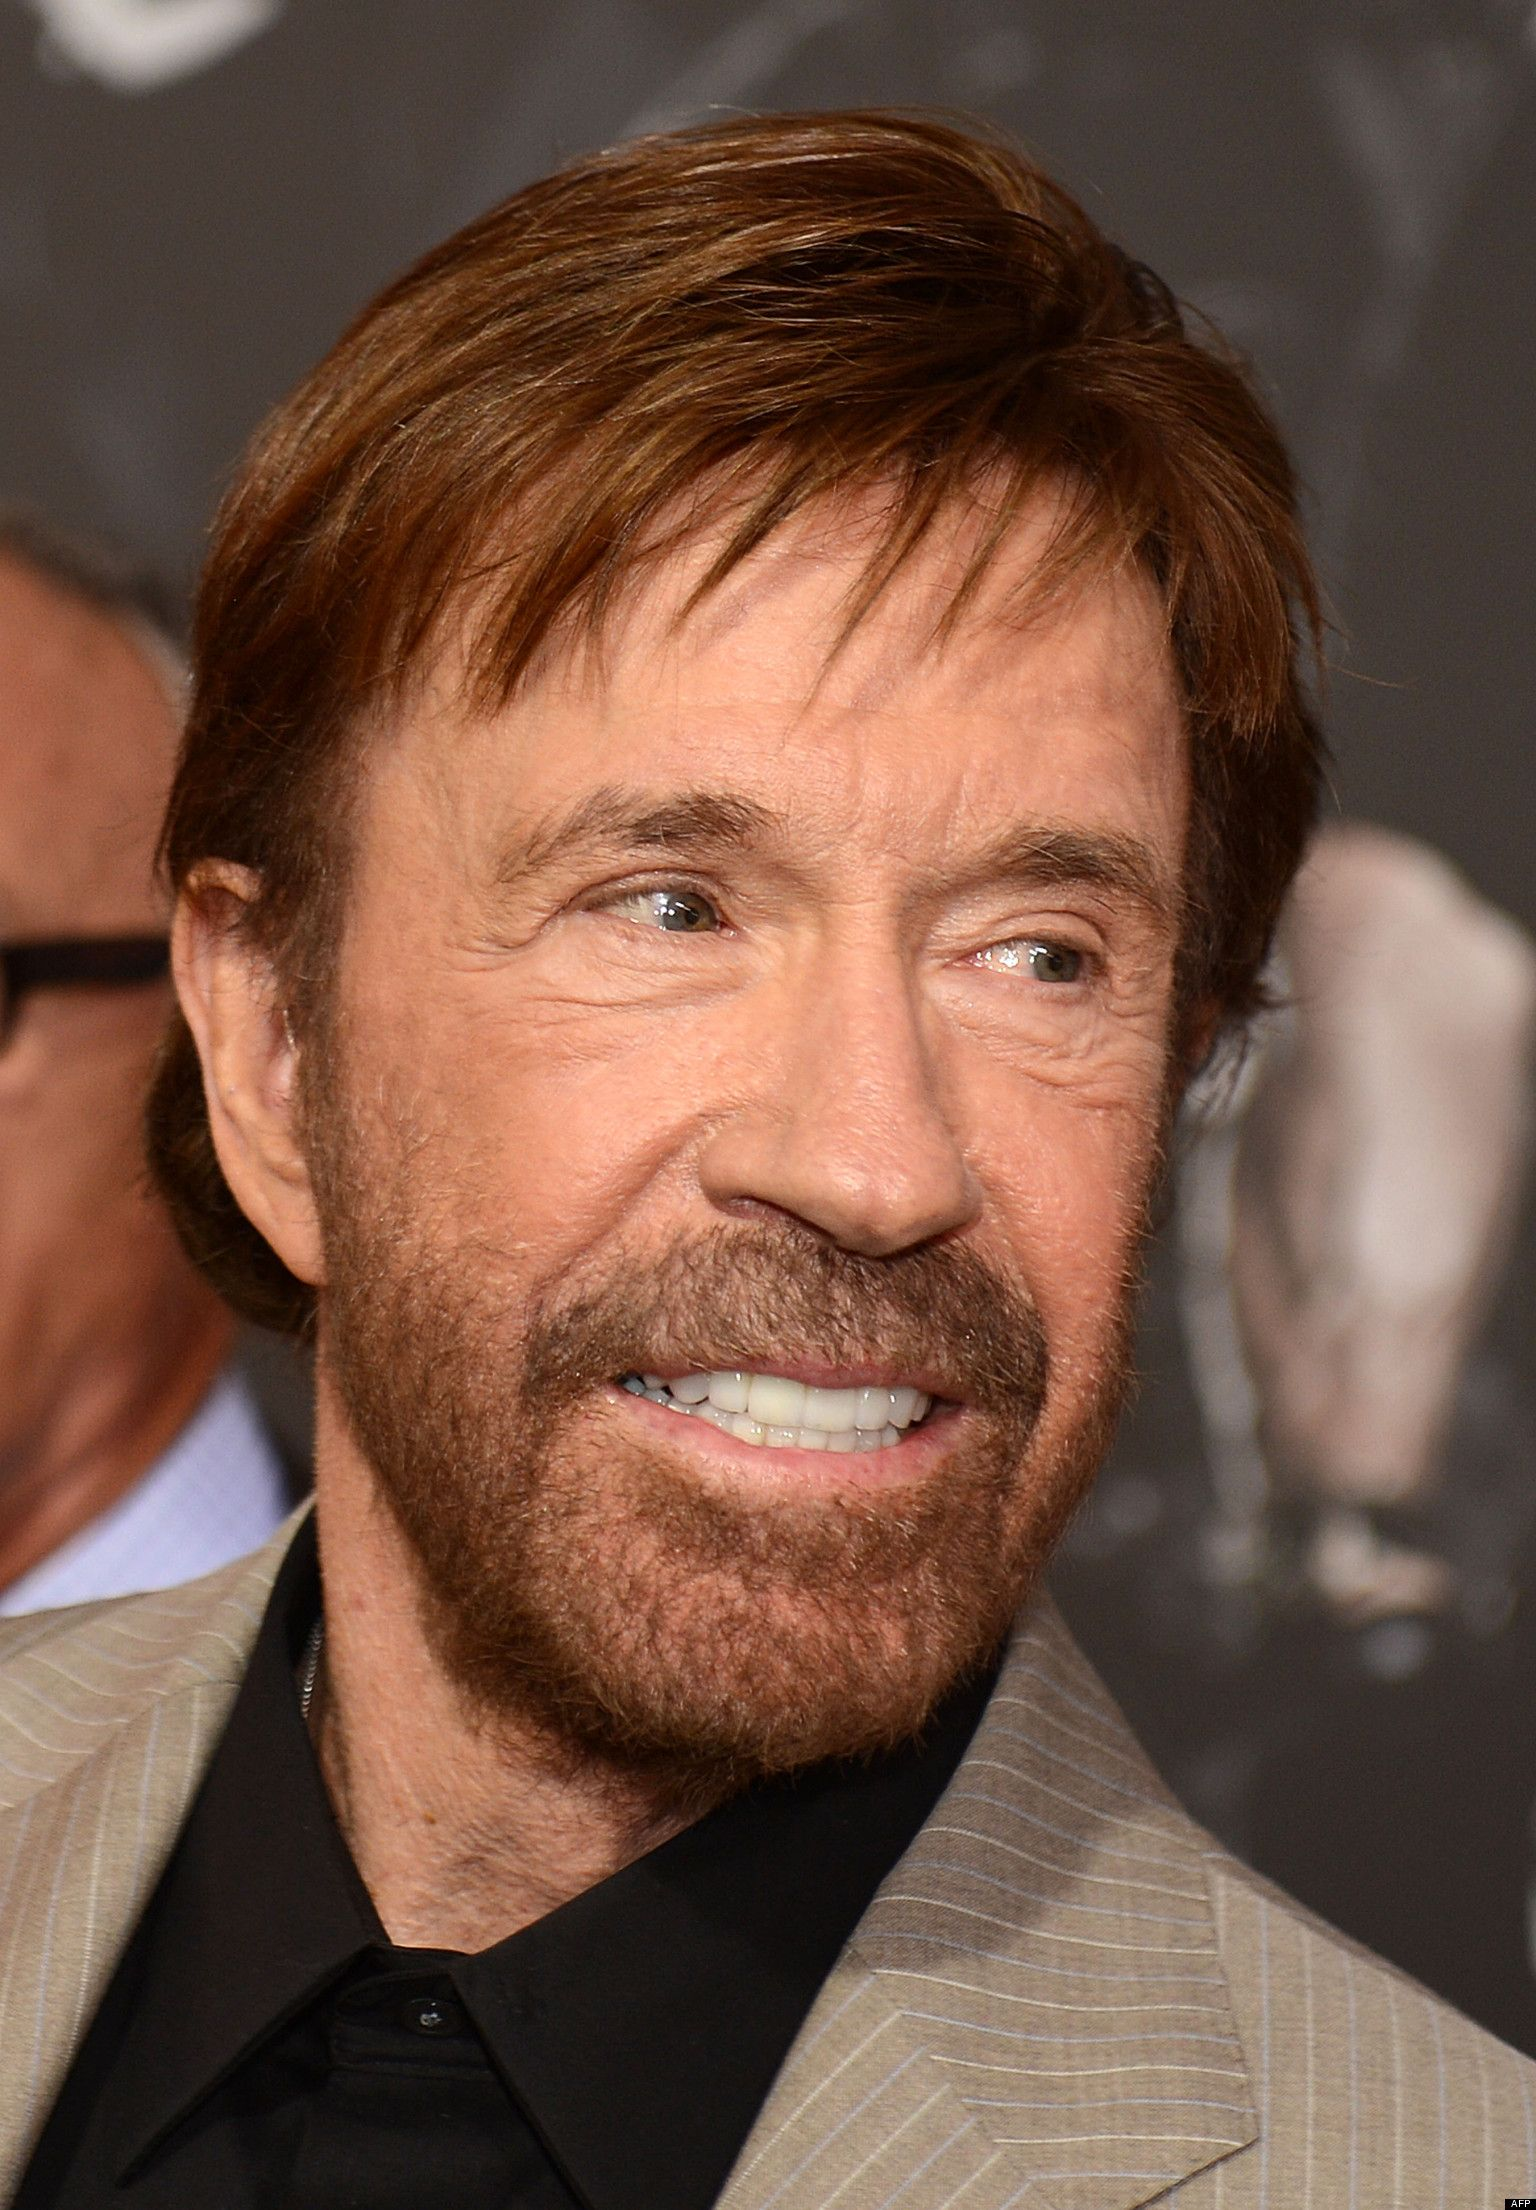 pin by ohitekah on chuck norris pinterest chuck norris and beard styles. Black Bedroom Furniture Sets. Home Design Ideas